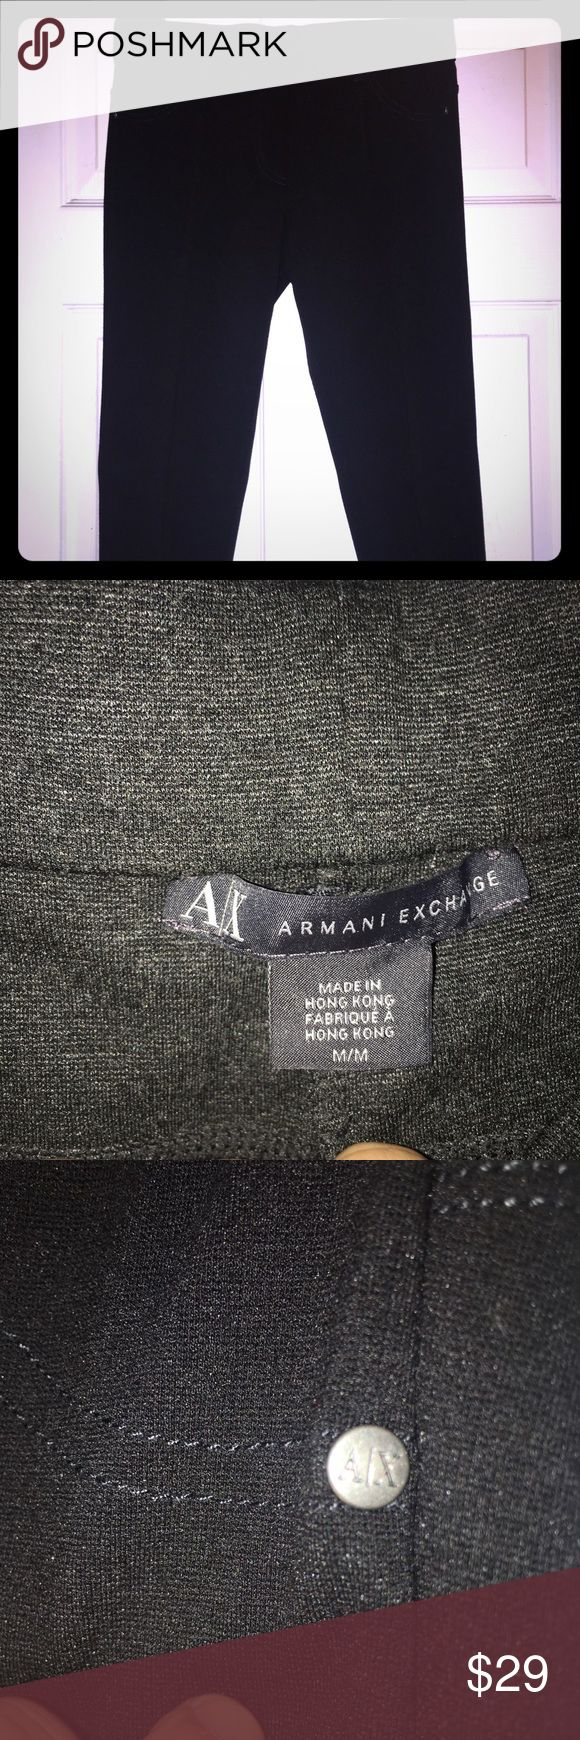 ARMANI EXCHANGE LEGGINGS! Perfect fit! Structure lined down to ankle/  with A/X logo on pockets in back and side of pants! Great fit! Perfect shaping/slimming even! I bought .. QUALITY IS KEY! A/X Armani Exchange Pants Leggings